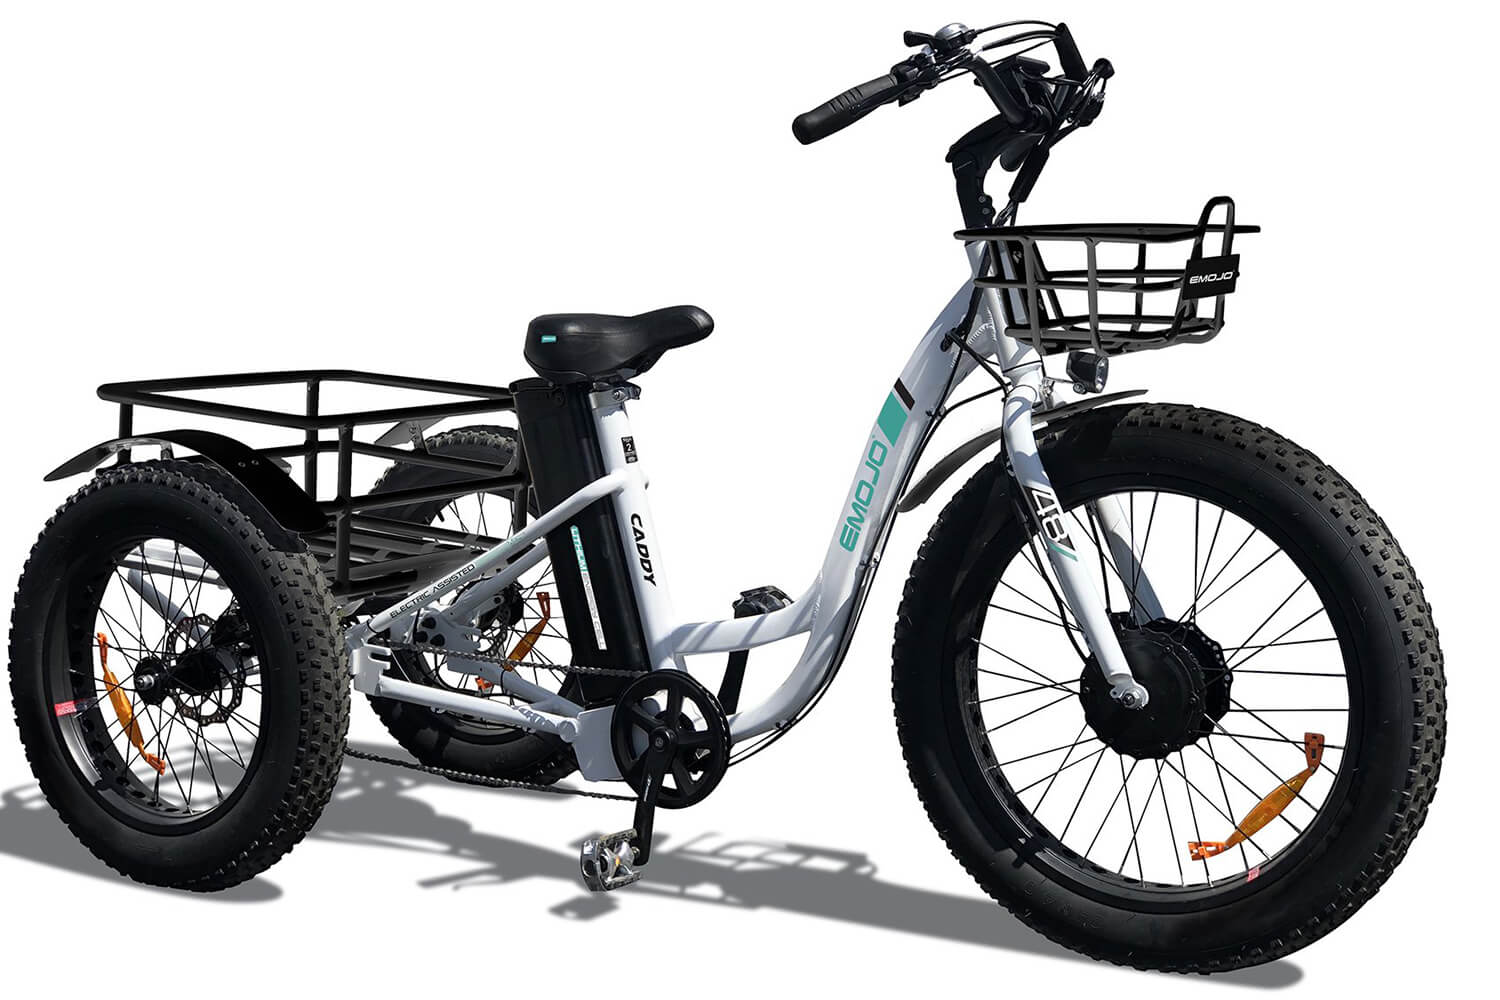 EMOJO Caddy Fat Tire Electric Trike